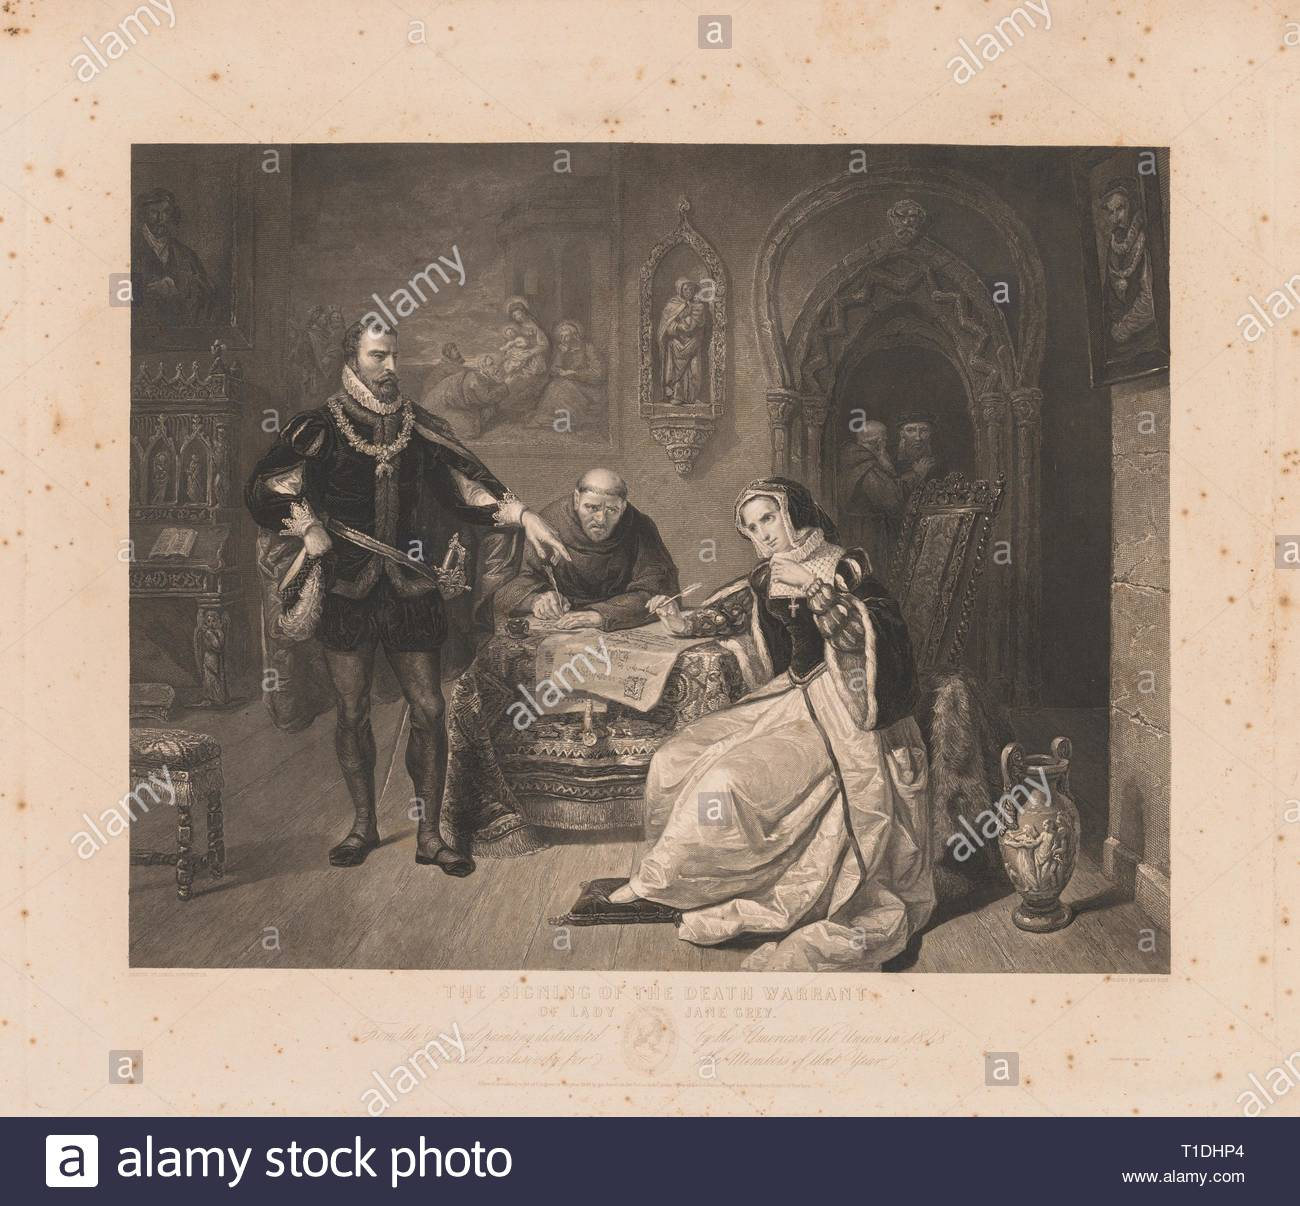 Signing of the Death Warrant of Lady Jane Grey. Charles Kennedy Burt (American, 1823-1892). Engraving. - Stock Image